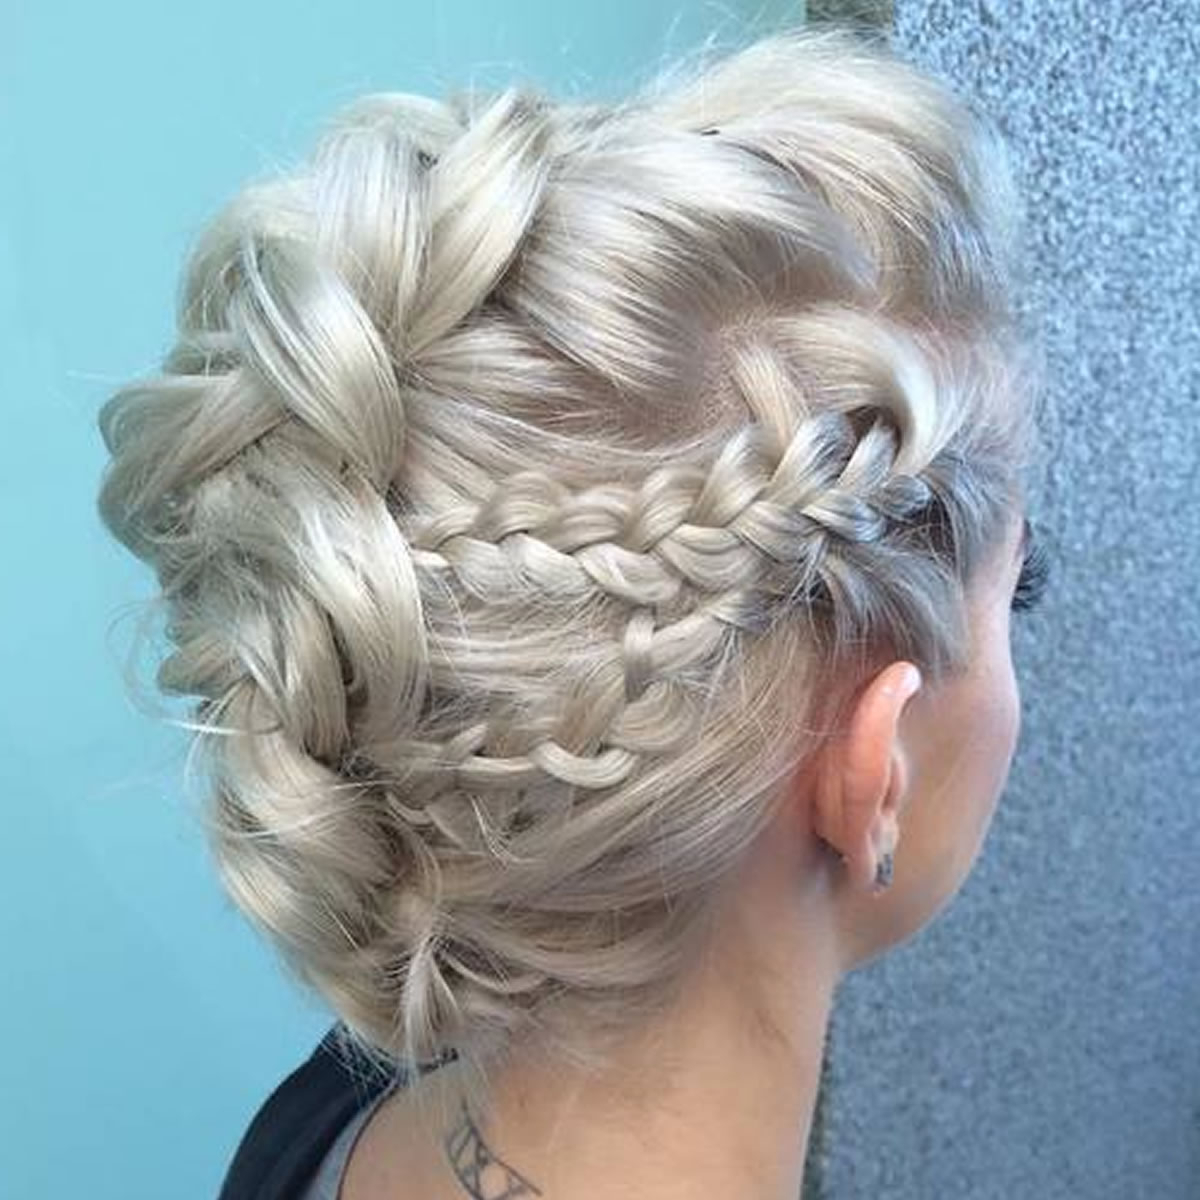 Famous Glamorous Mohawk Updo Hairstyles Regarding 30 Glamorous Braided Mohawk Hairstyles For Girls And Women – Page  (View 6 of 20)